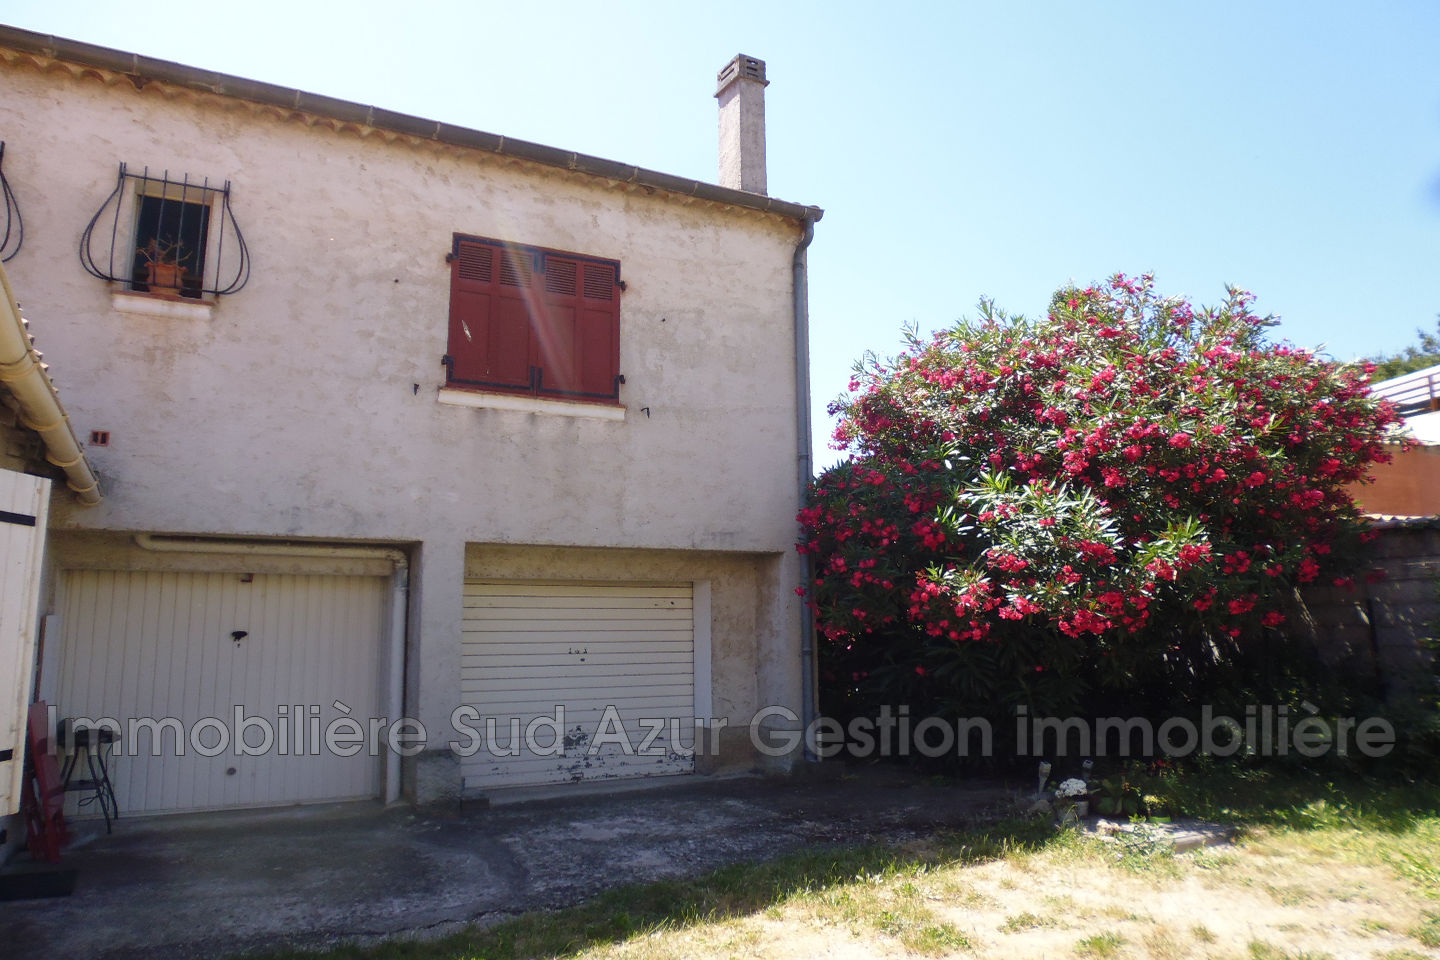 Vente maison de ville solli s pont 83210 189 000 for Location garage sollies pont